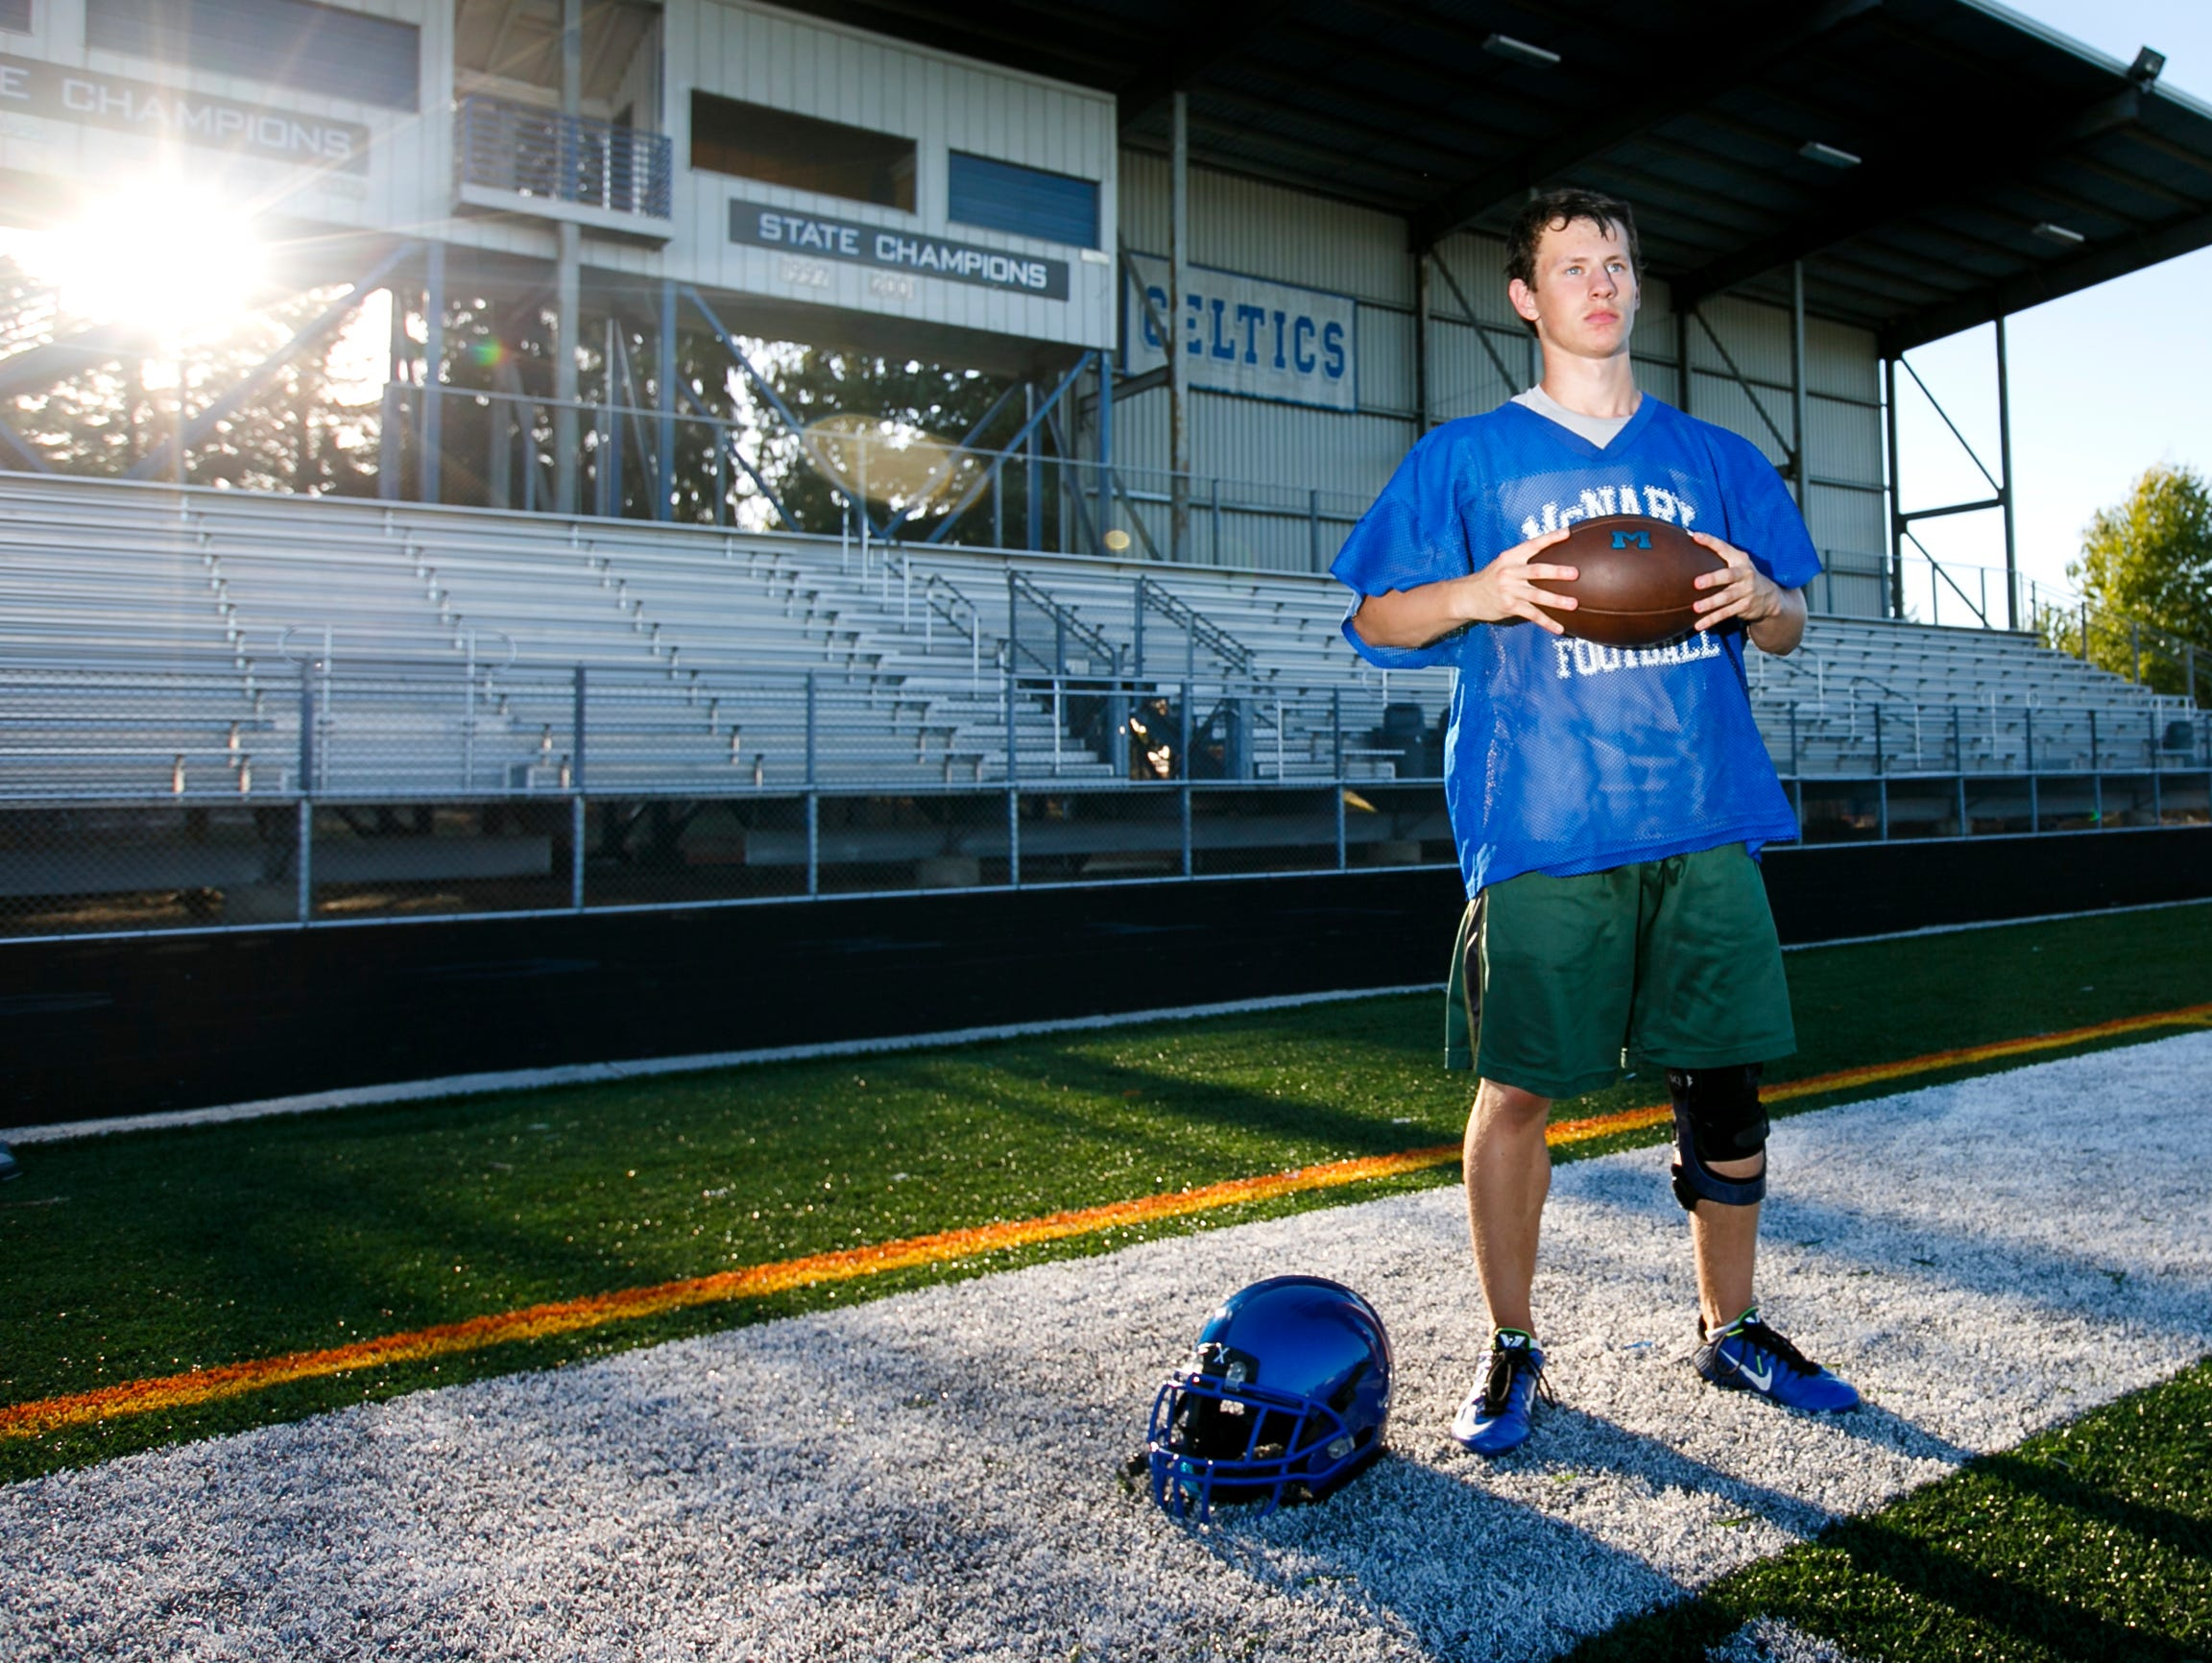 A.J. Johnk is a senior running back and kicker for the McNary High School football team. After recovering from a torn ACL in 2014, Johnk is back and ready to play for the varsity team again.